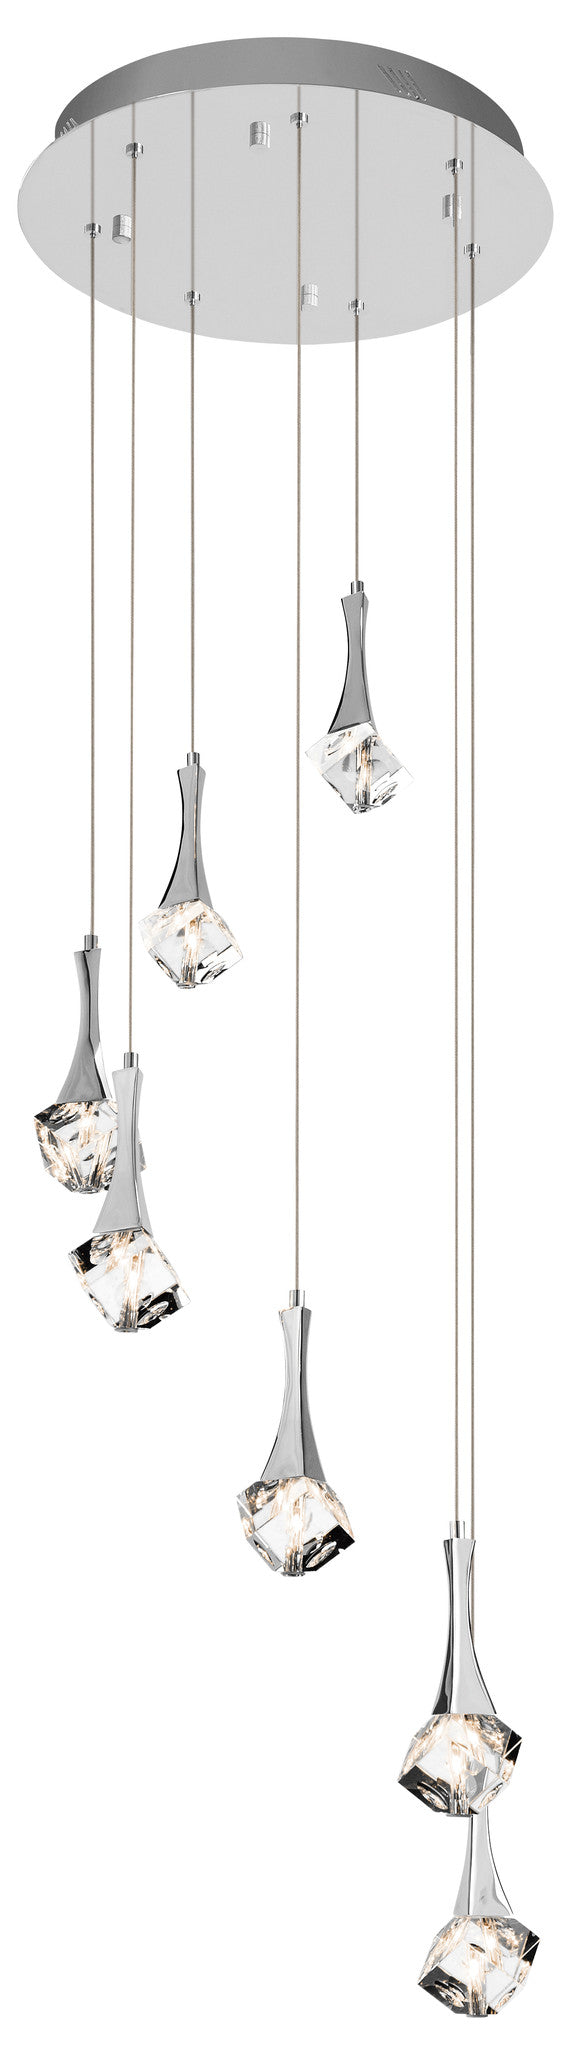 Rockne™ – Model 83134 7-Light Spiral Mini Pendant Chandelier